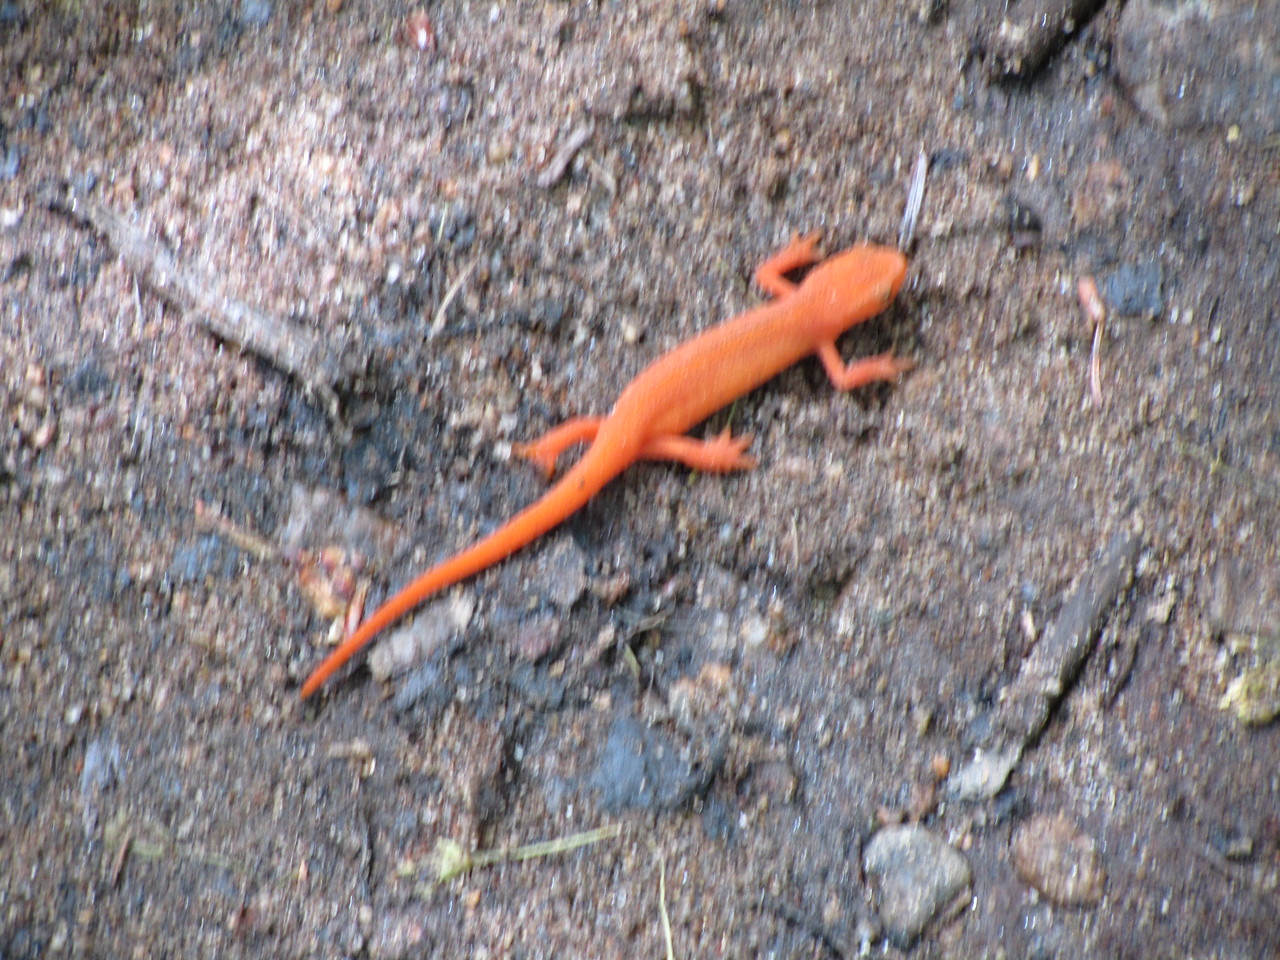 This newt was ripping through the under-brush! Had to be doing 30-40 mph. As an outdoorsman and Master Forest Owner Volunteer, I saw him, grabbed my camera in the blink of an eye and snapped a picture before he was gone.......... It is a little blurry but so is a 108 mph fastball from Nolan Ryan.